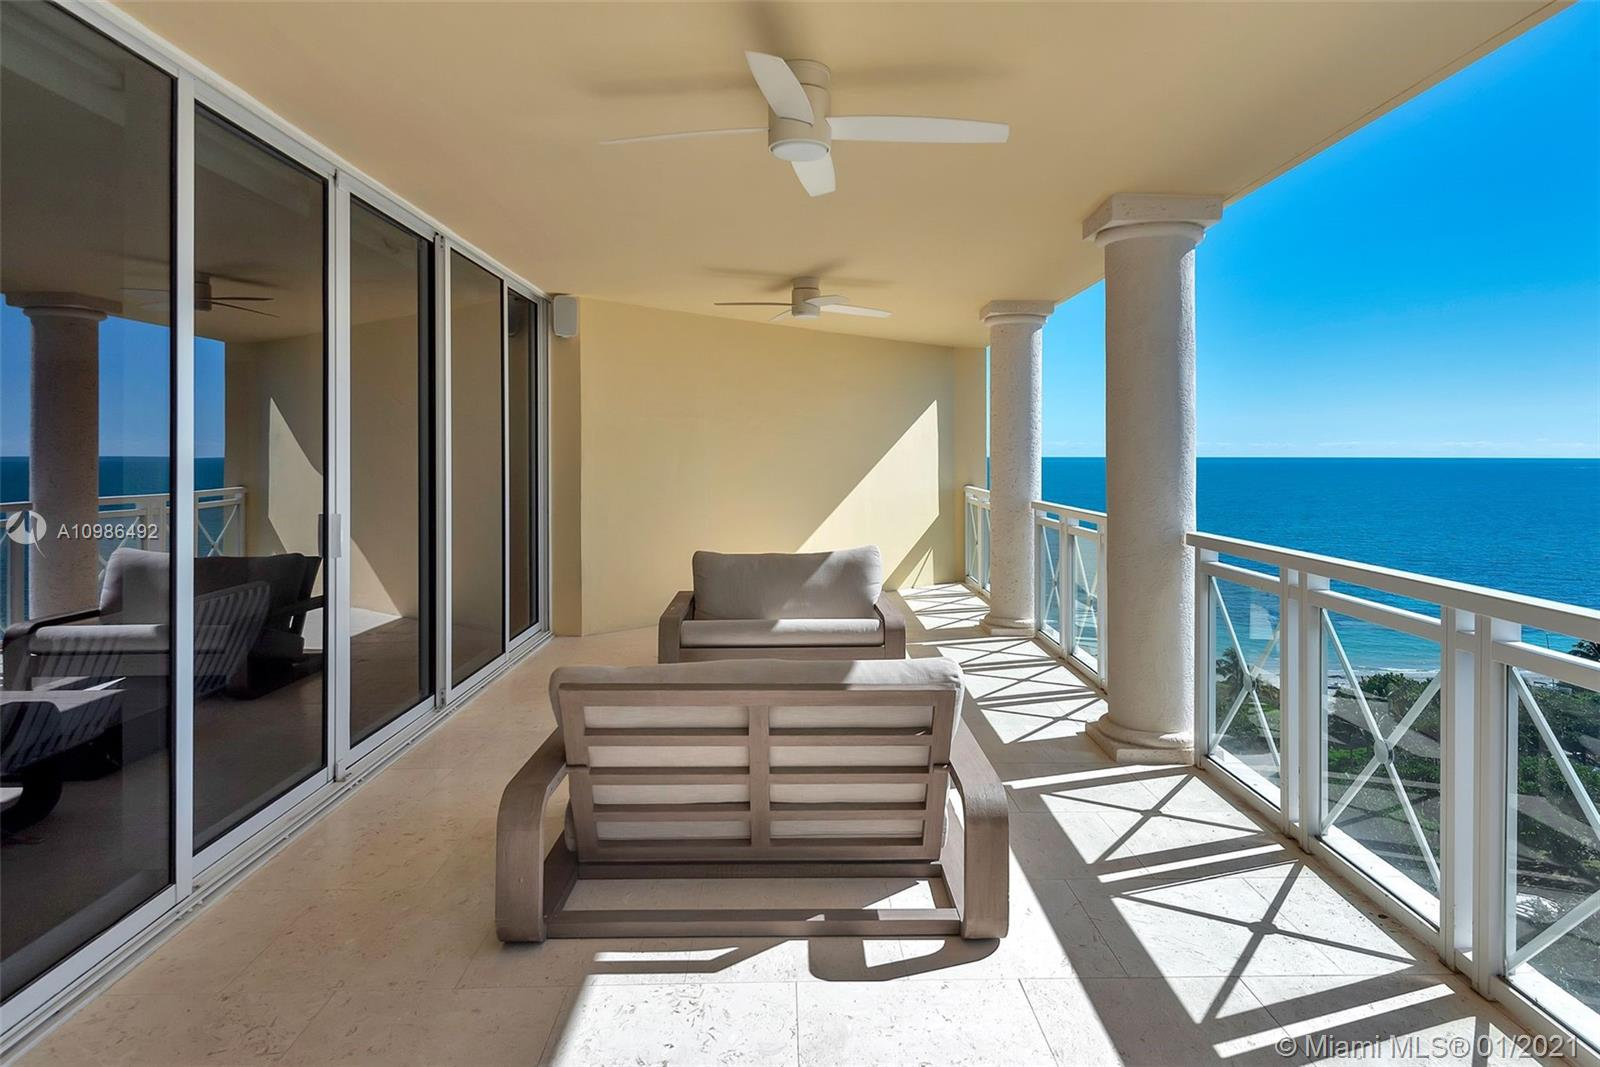 Move right into this beautifully completely updated 3/4.5 flow through high floor unit at Grand Bay Tower. This unit features the highest quality materials throughout.  New kitchen with top of the line appliances including Sub Zero and Viking. Surround system throughout the apartment with Lutron LED lights and remote shades.  Unit has white washed wood flooring throughout with marble bathrooms. All the electrical, plumbing, and AC systems have been redone. Soundproofing has also been added to the bedroom walls for extra privacy. This unit has  Bay, Ocean, and City Views. Now includes a lobby level guest/staff suite.